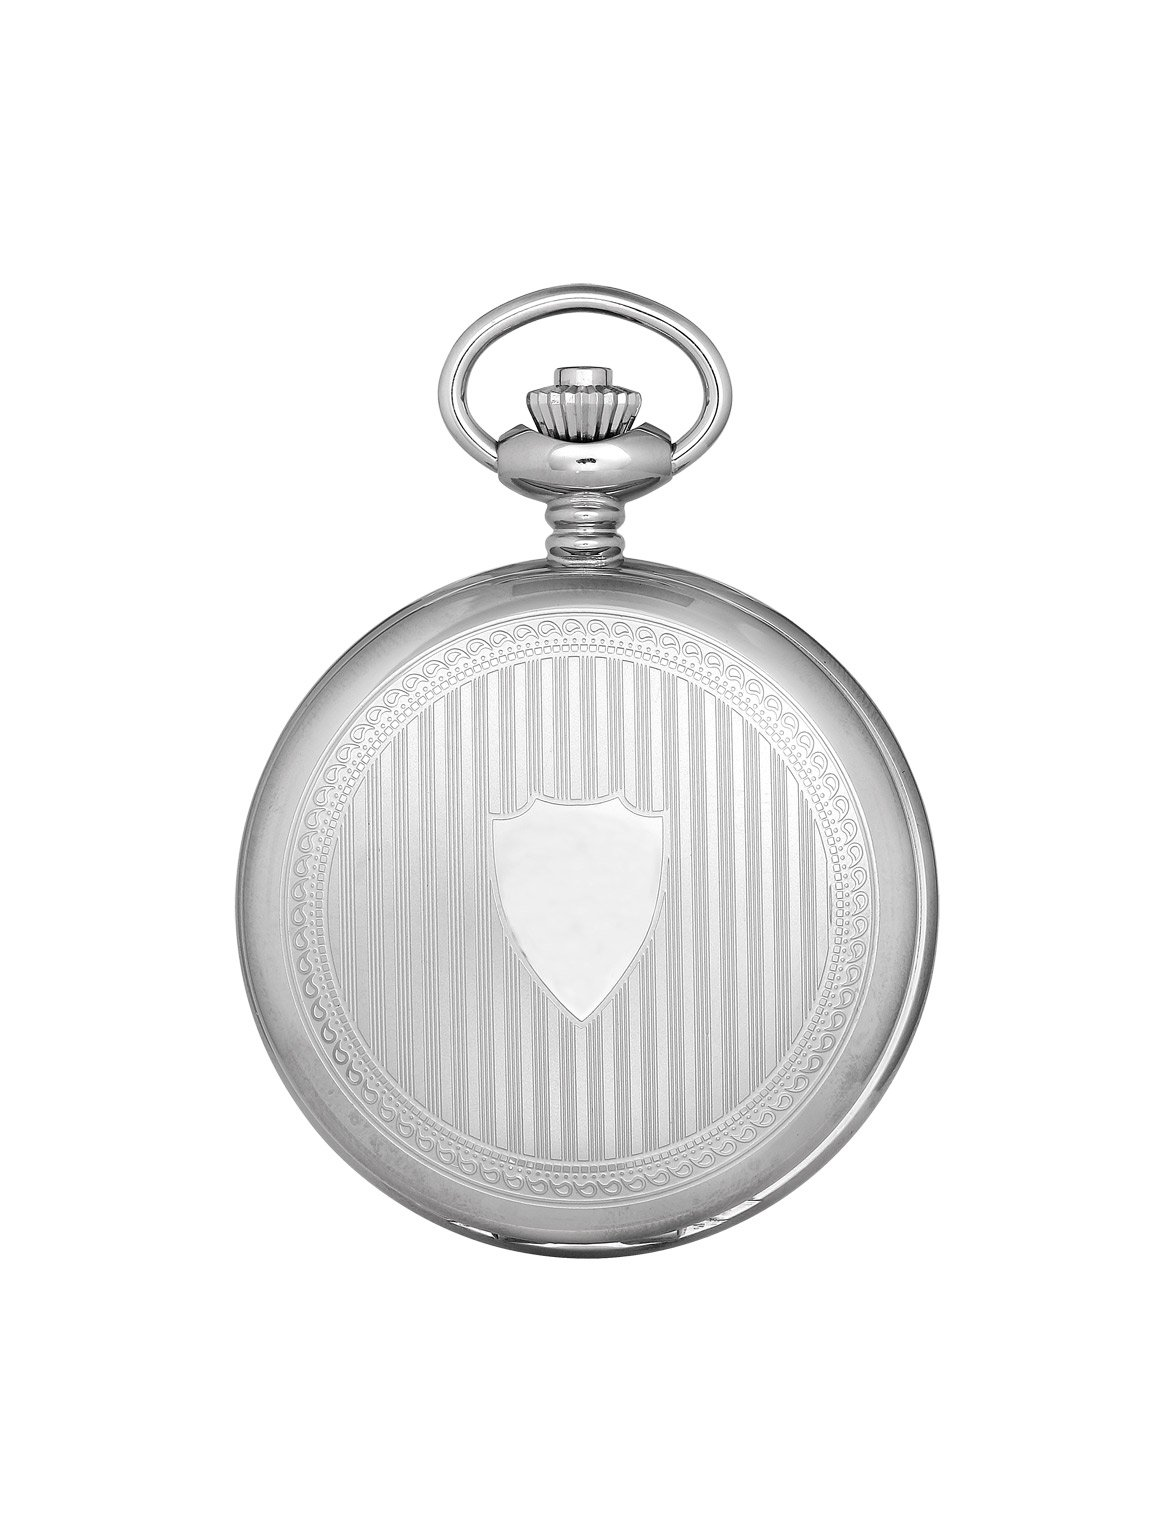 CDM product Charles-Hubert, Paris Premium Collection Stainless Steel Mechanical-Hand-Wind Pocket Watch (Model: DWA007) big image